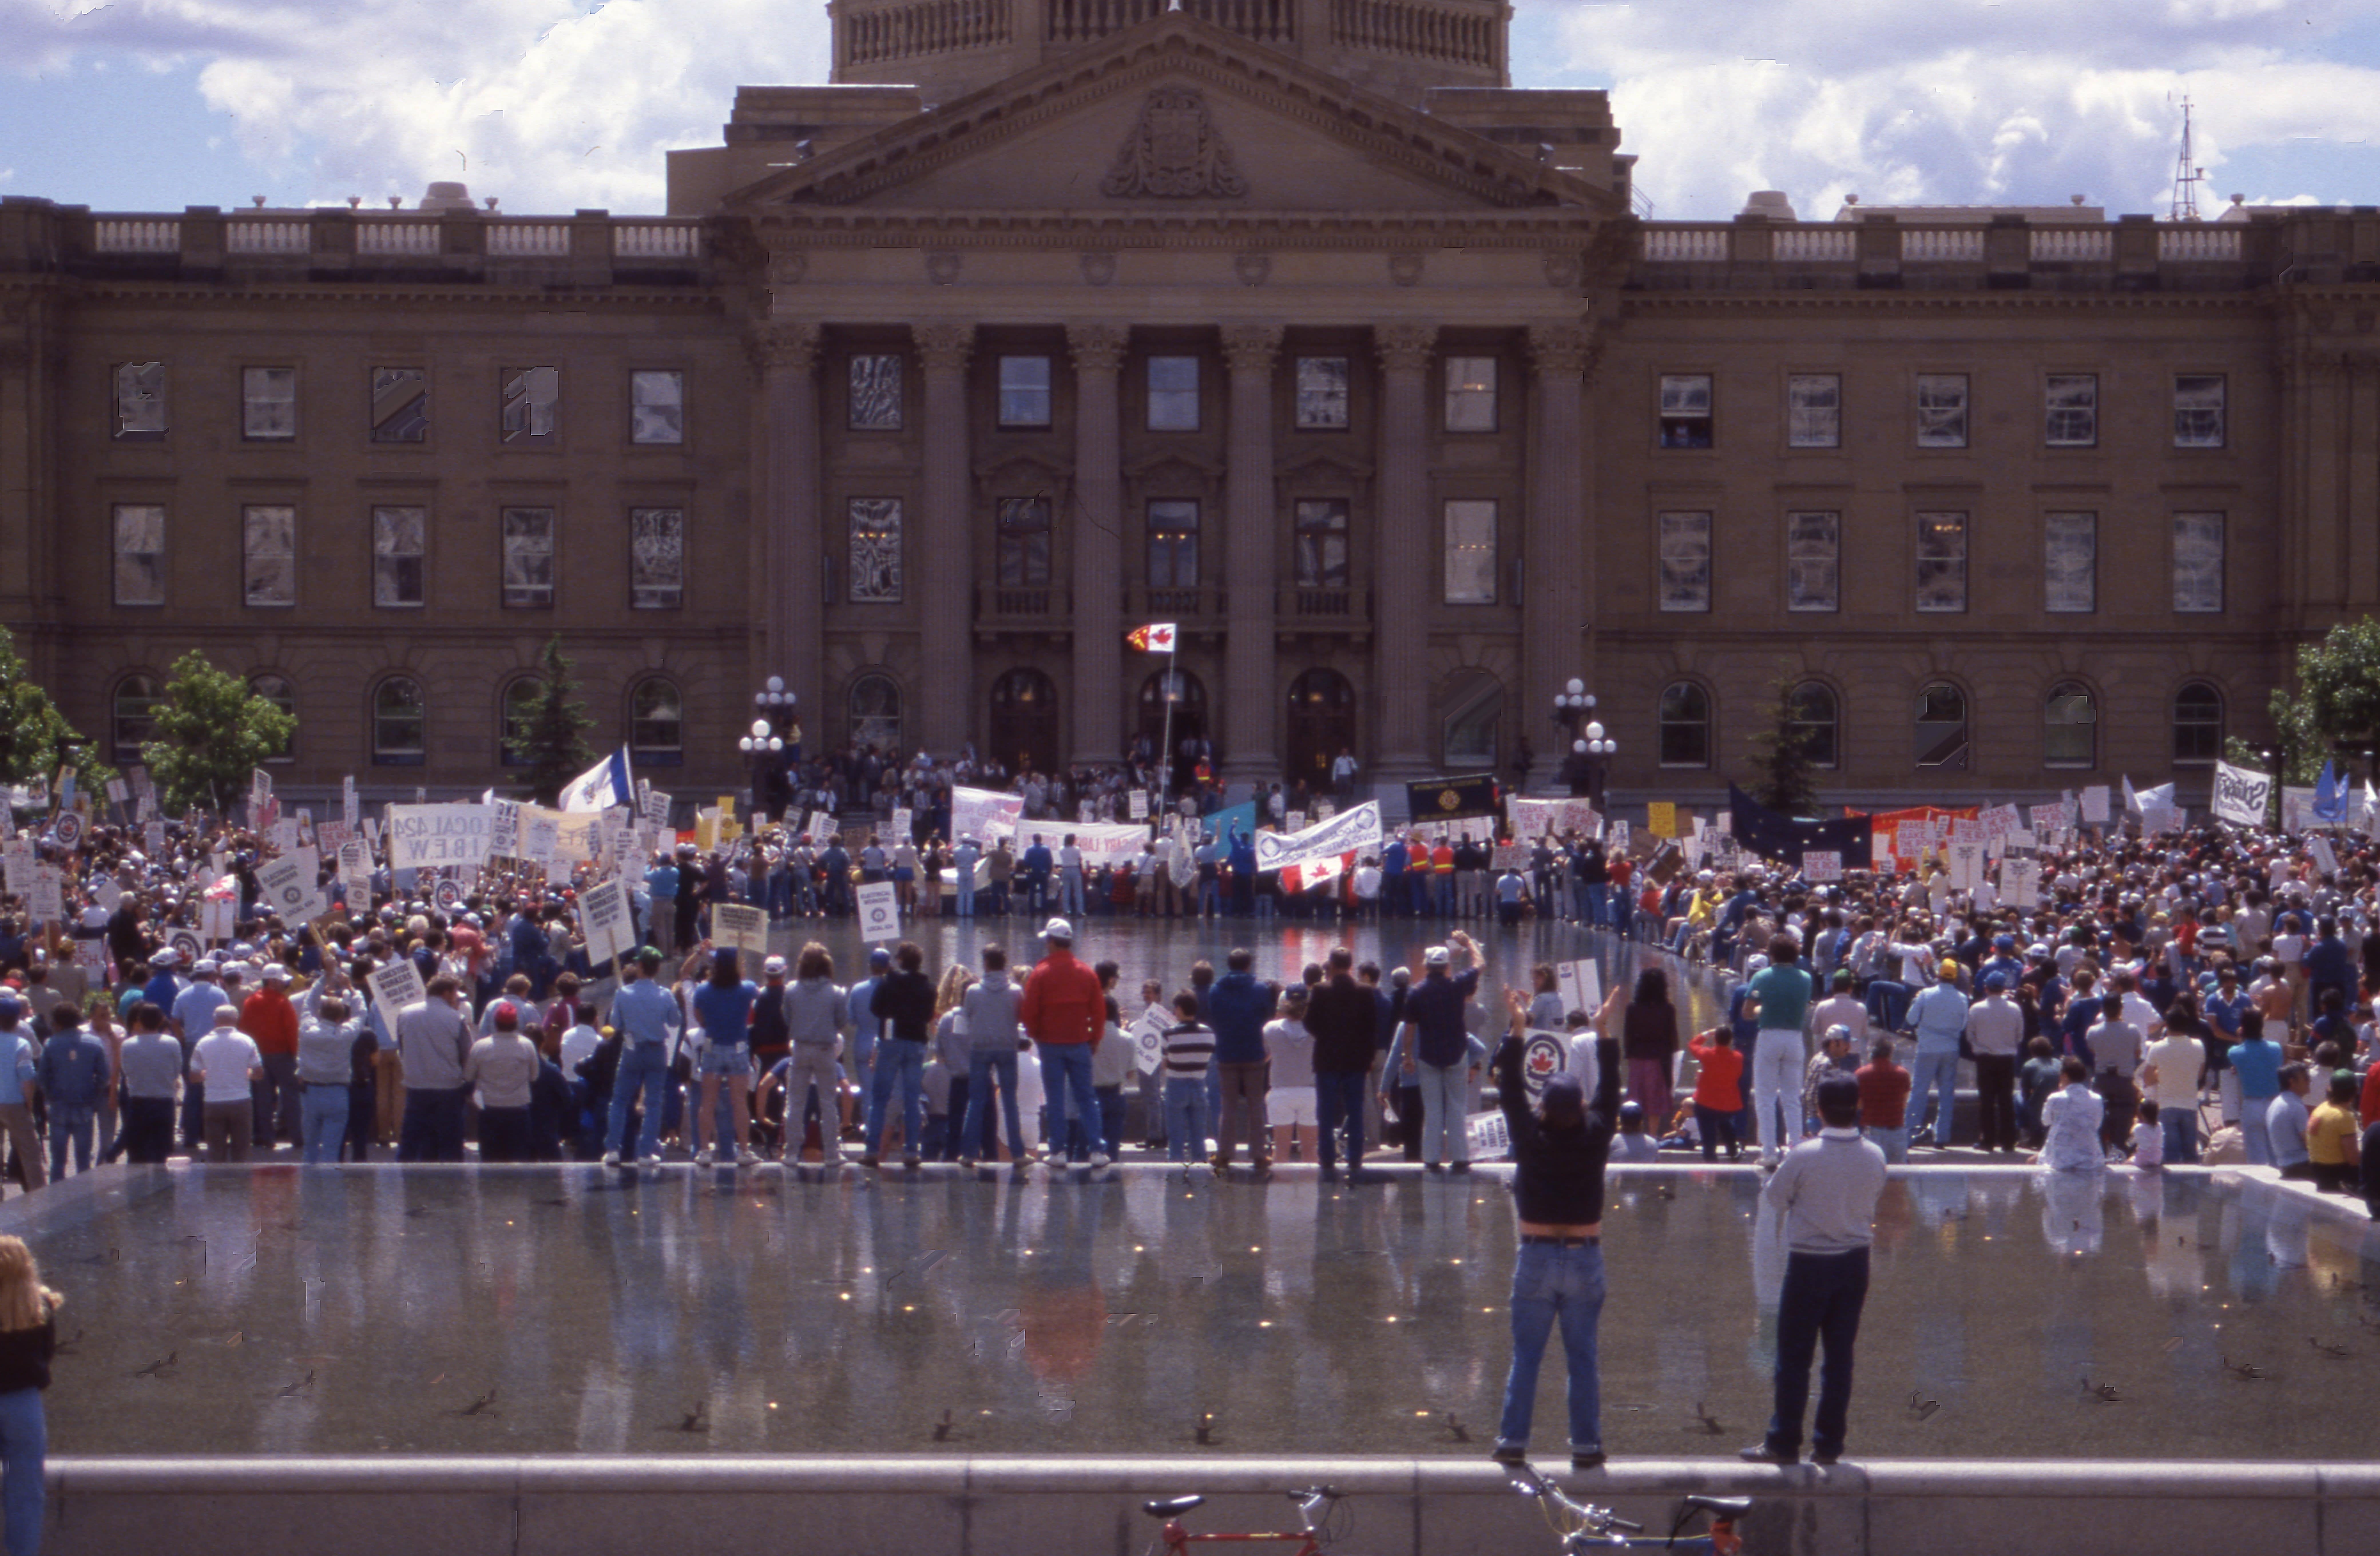 Gainers Strike, March on Legislature June 1986, Mike Tulley 02